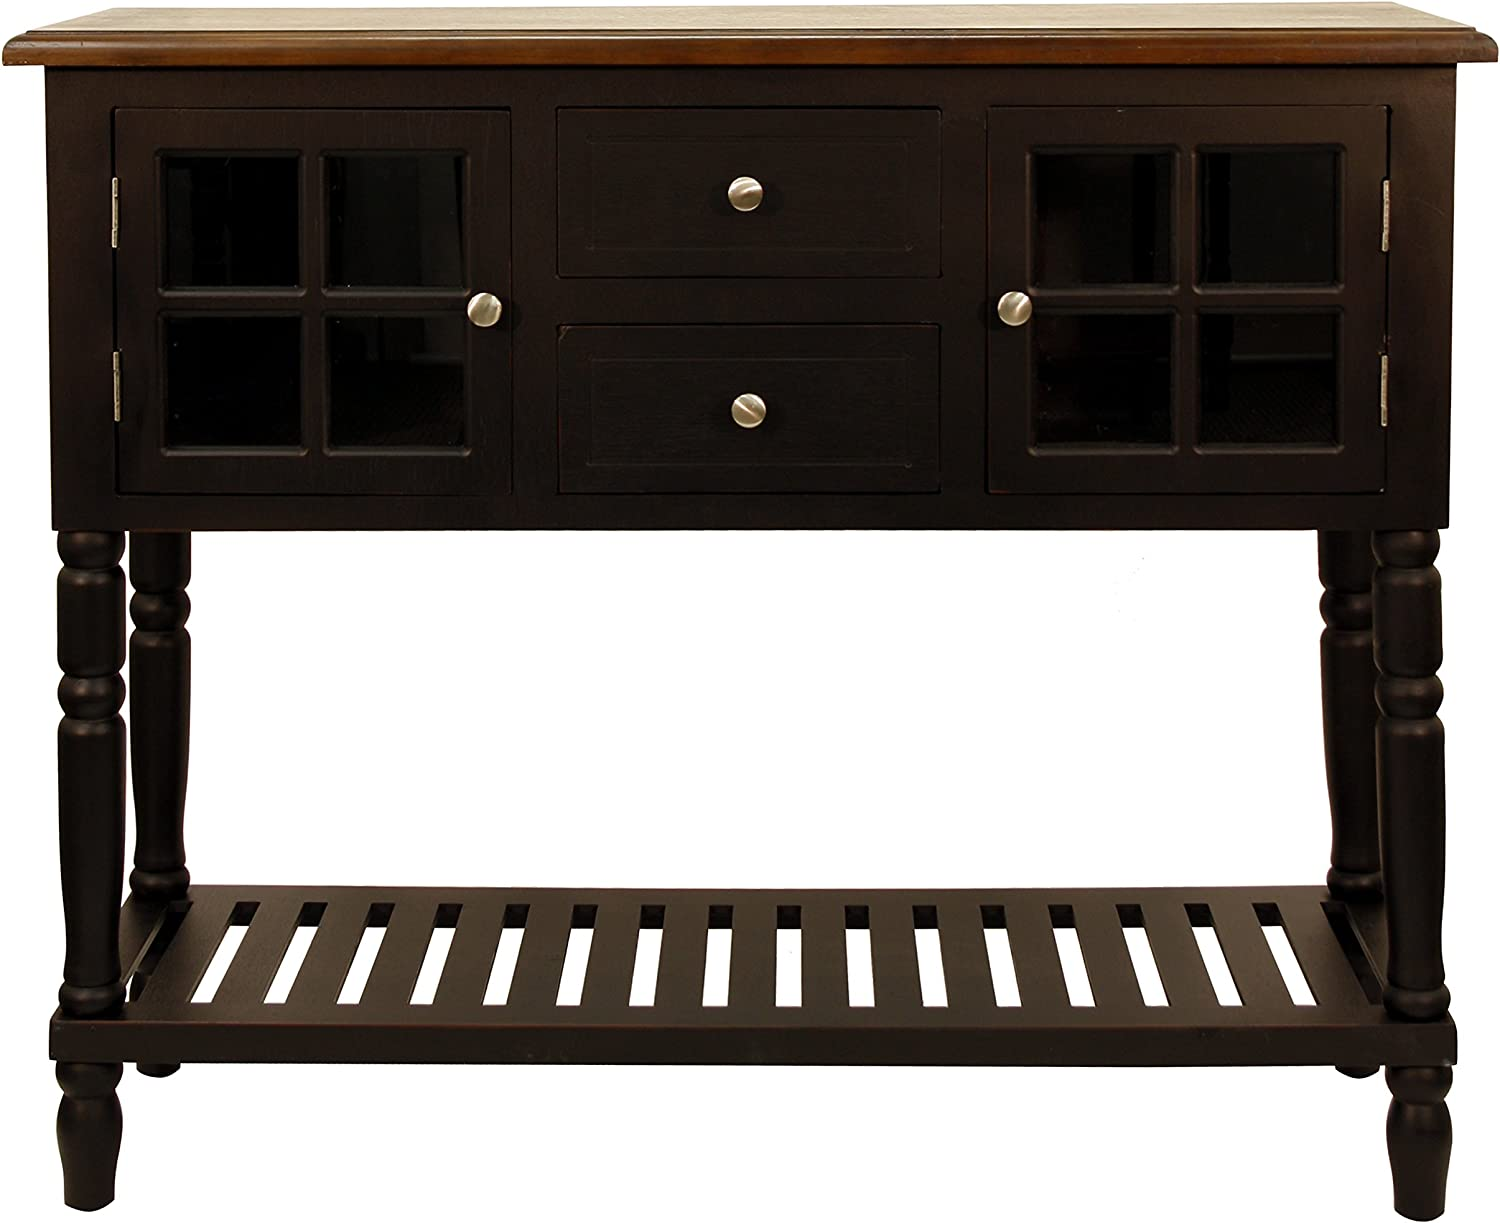 Décor Therapy Accent Table, Black